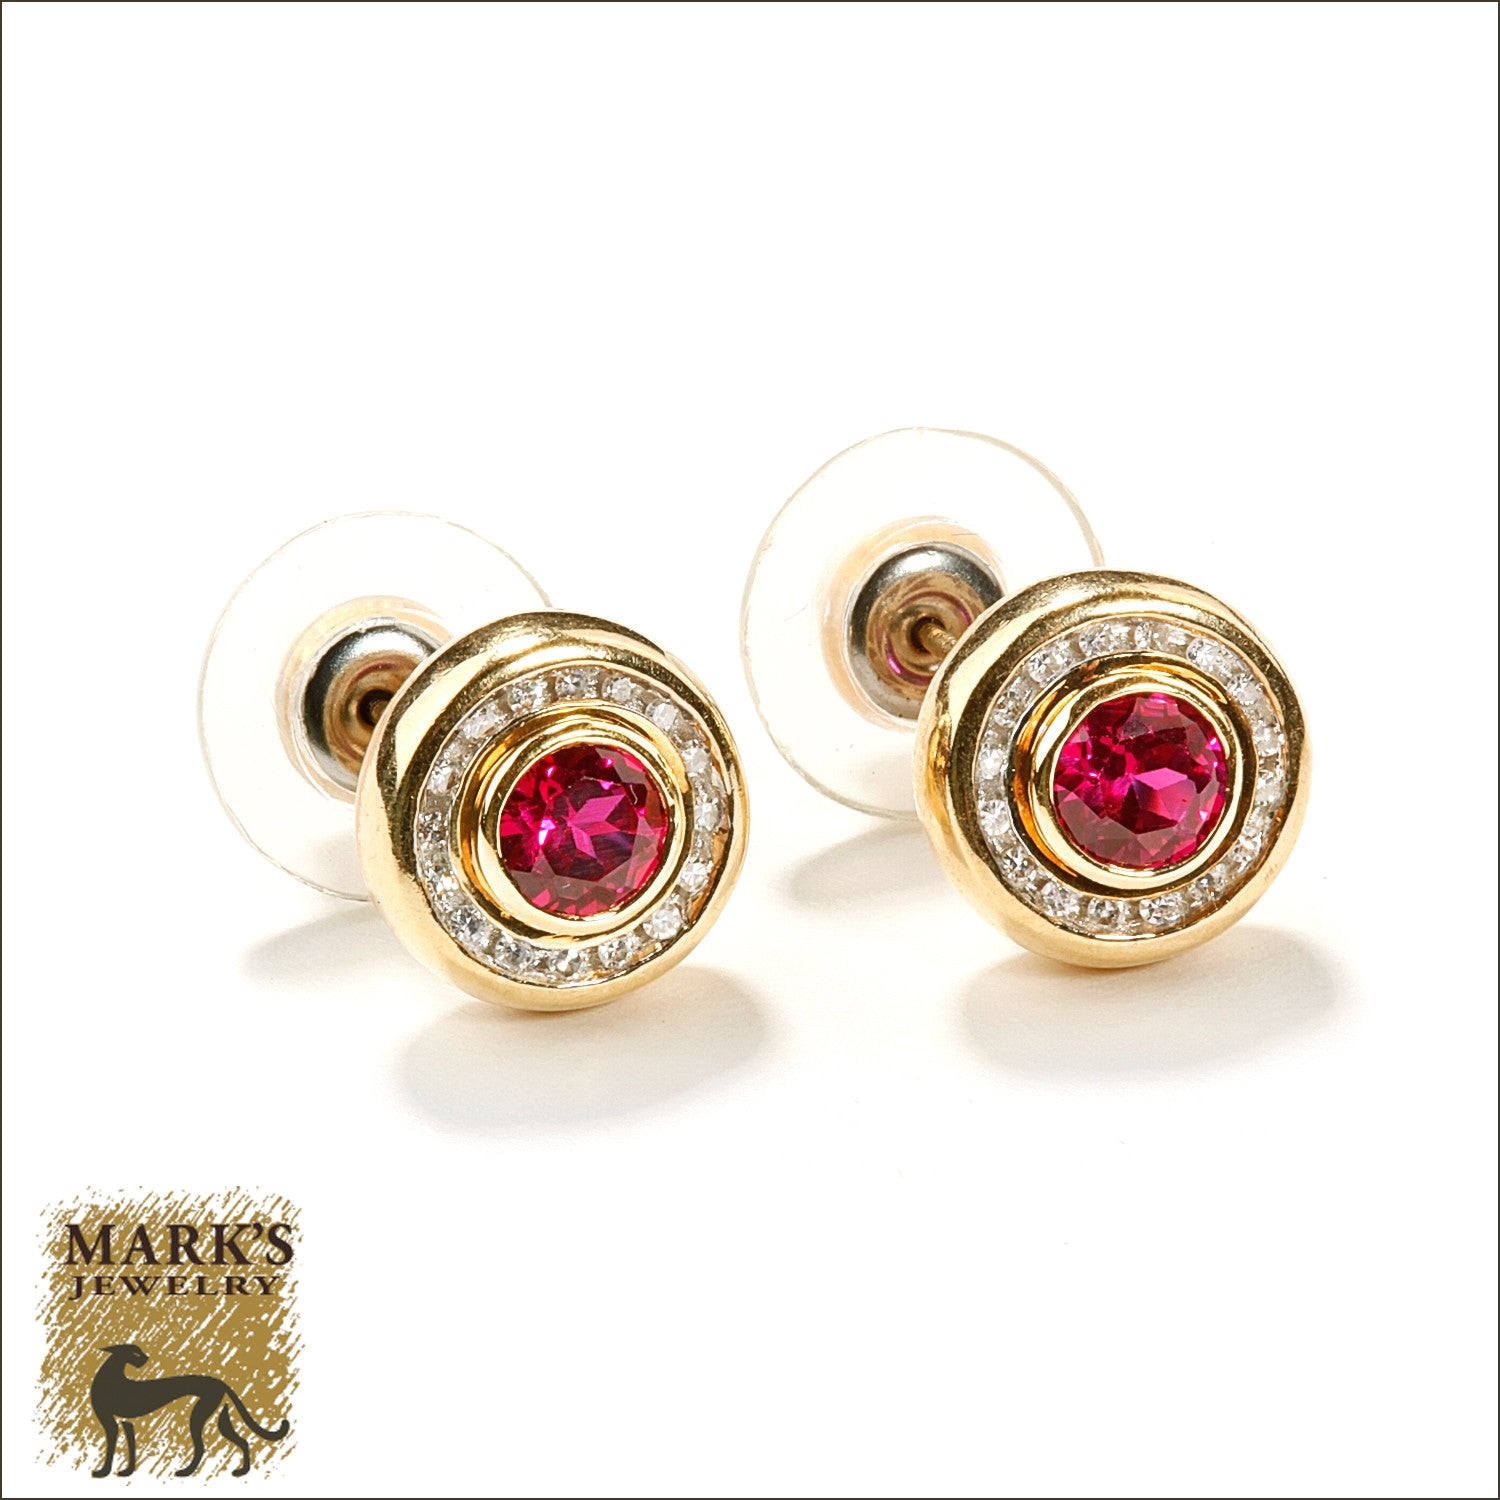 gemfields earrings dubai trending ruby unveils jewellery regalia hardy joanna